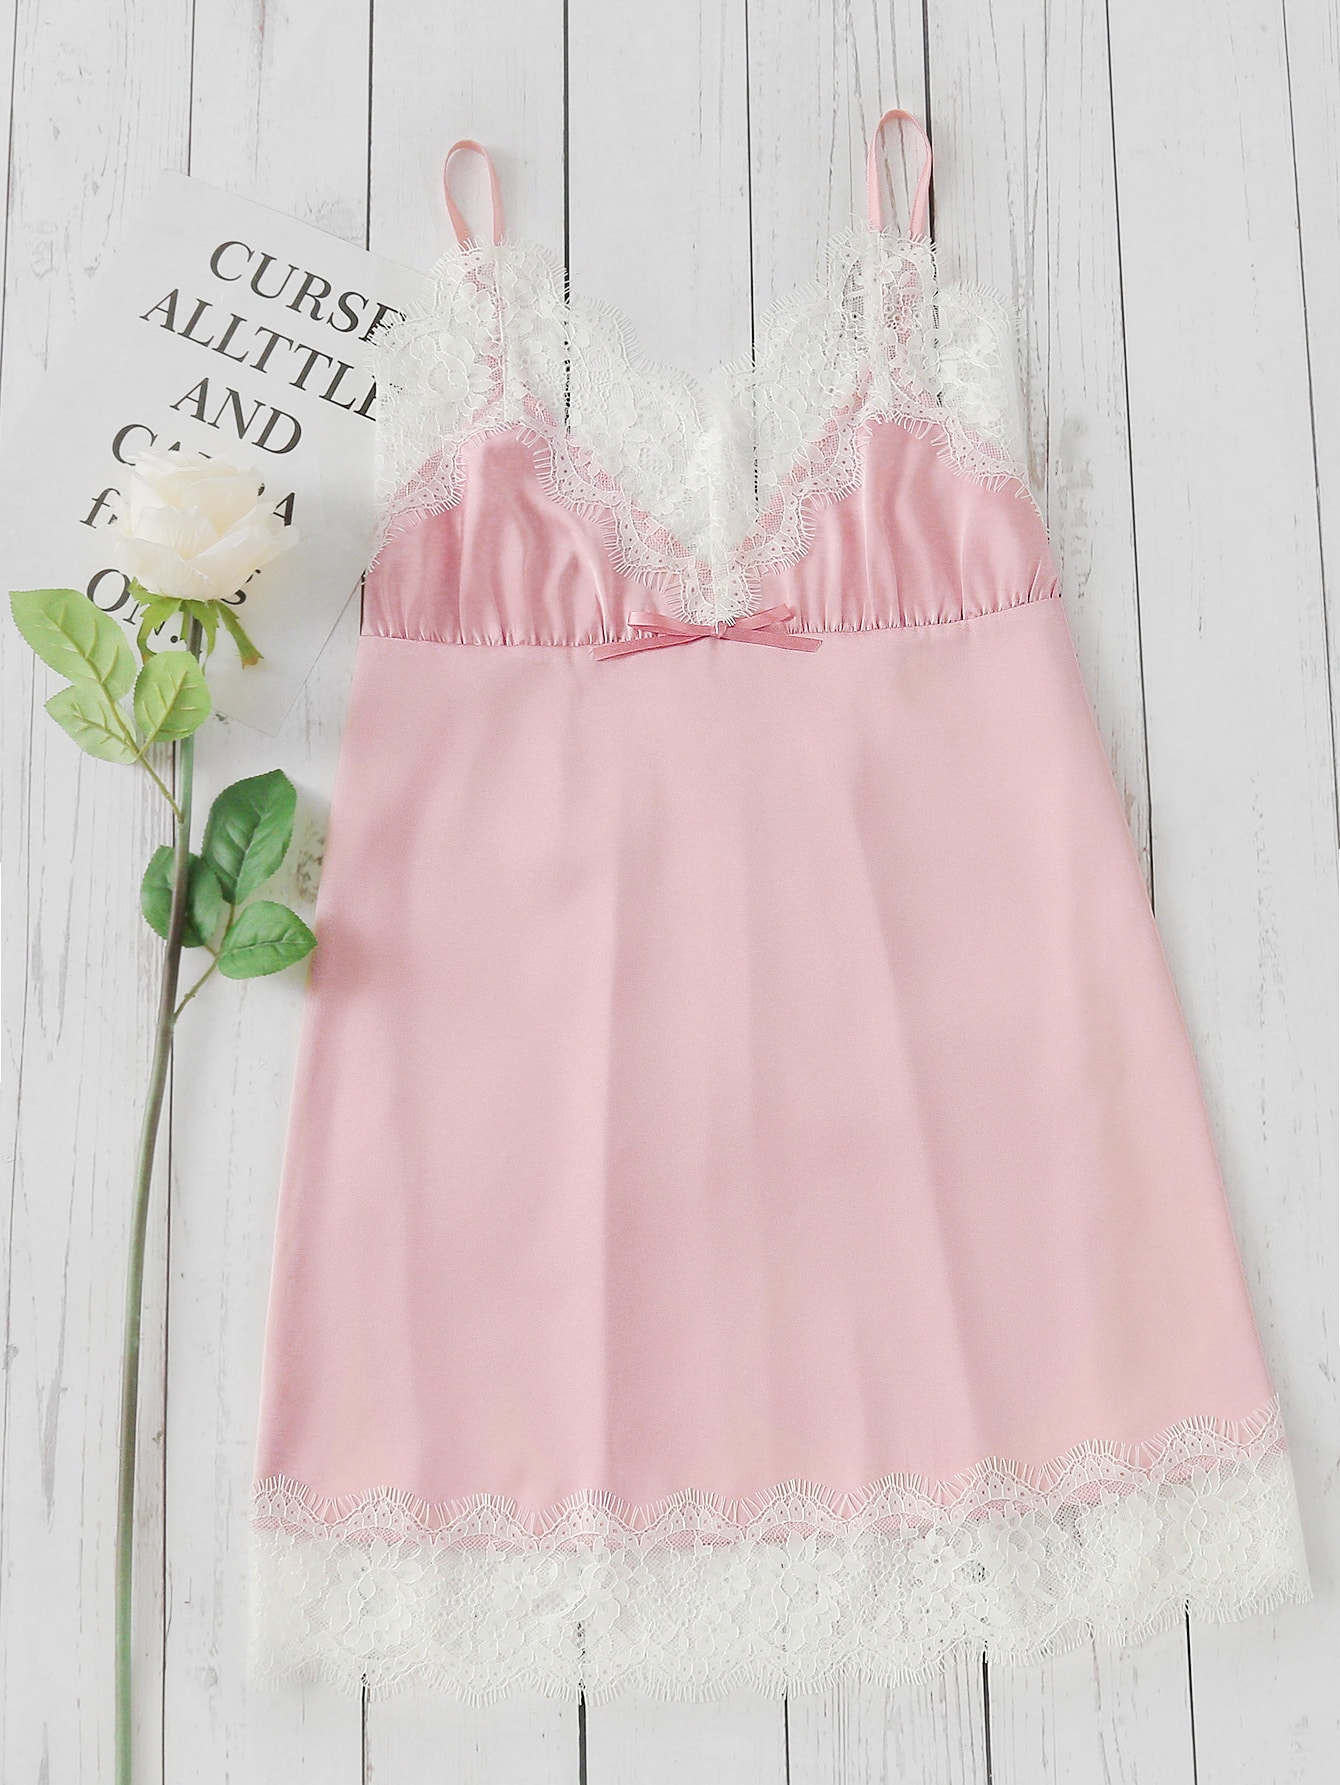 Contrast Lace Trim Triangle Sleep Dress maison jules new junior s small s pink combo lace crepe contrast trim dress $89